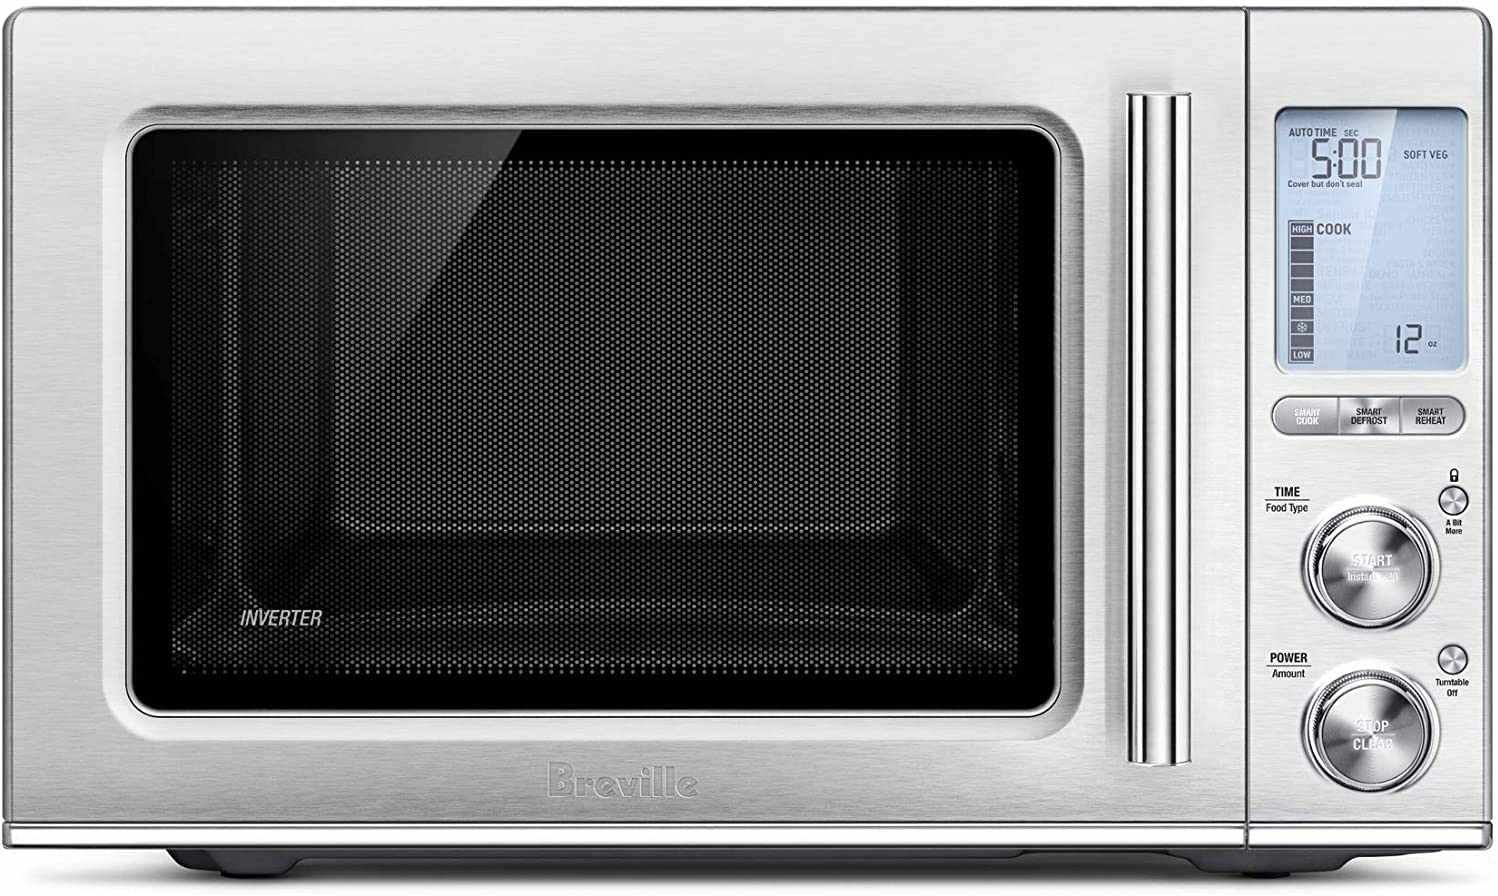 breville-smooth-wave-microwave